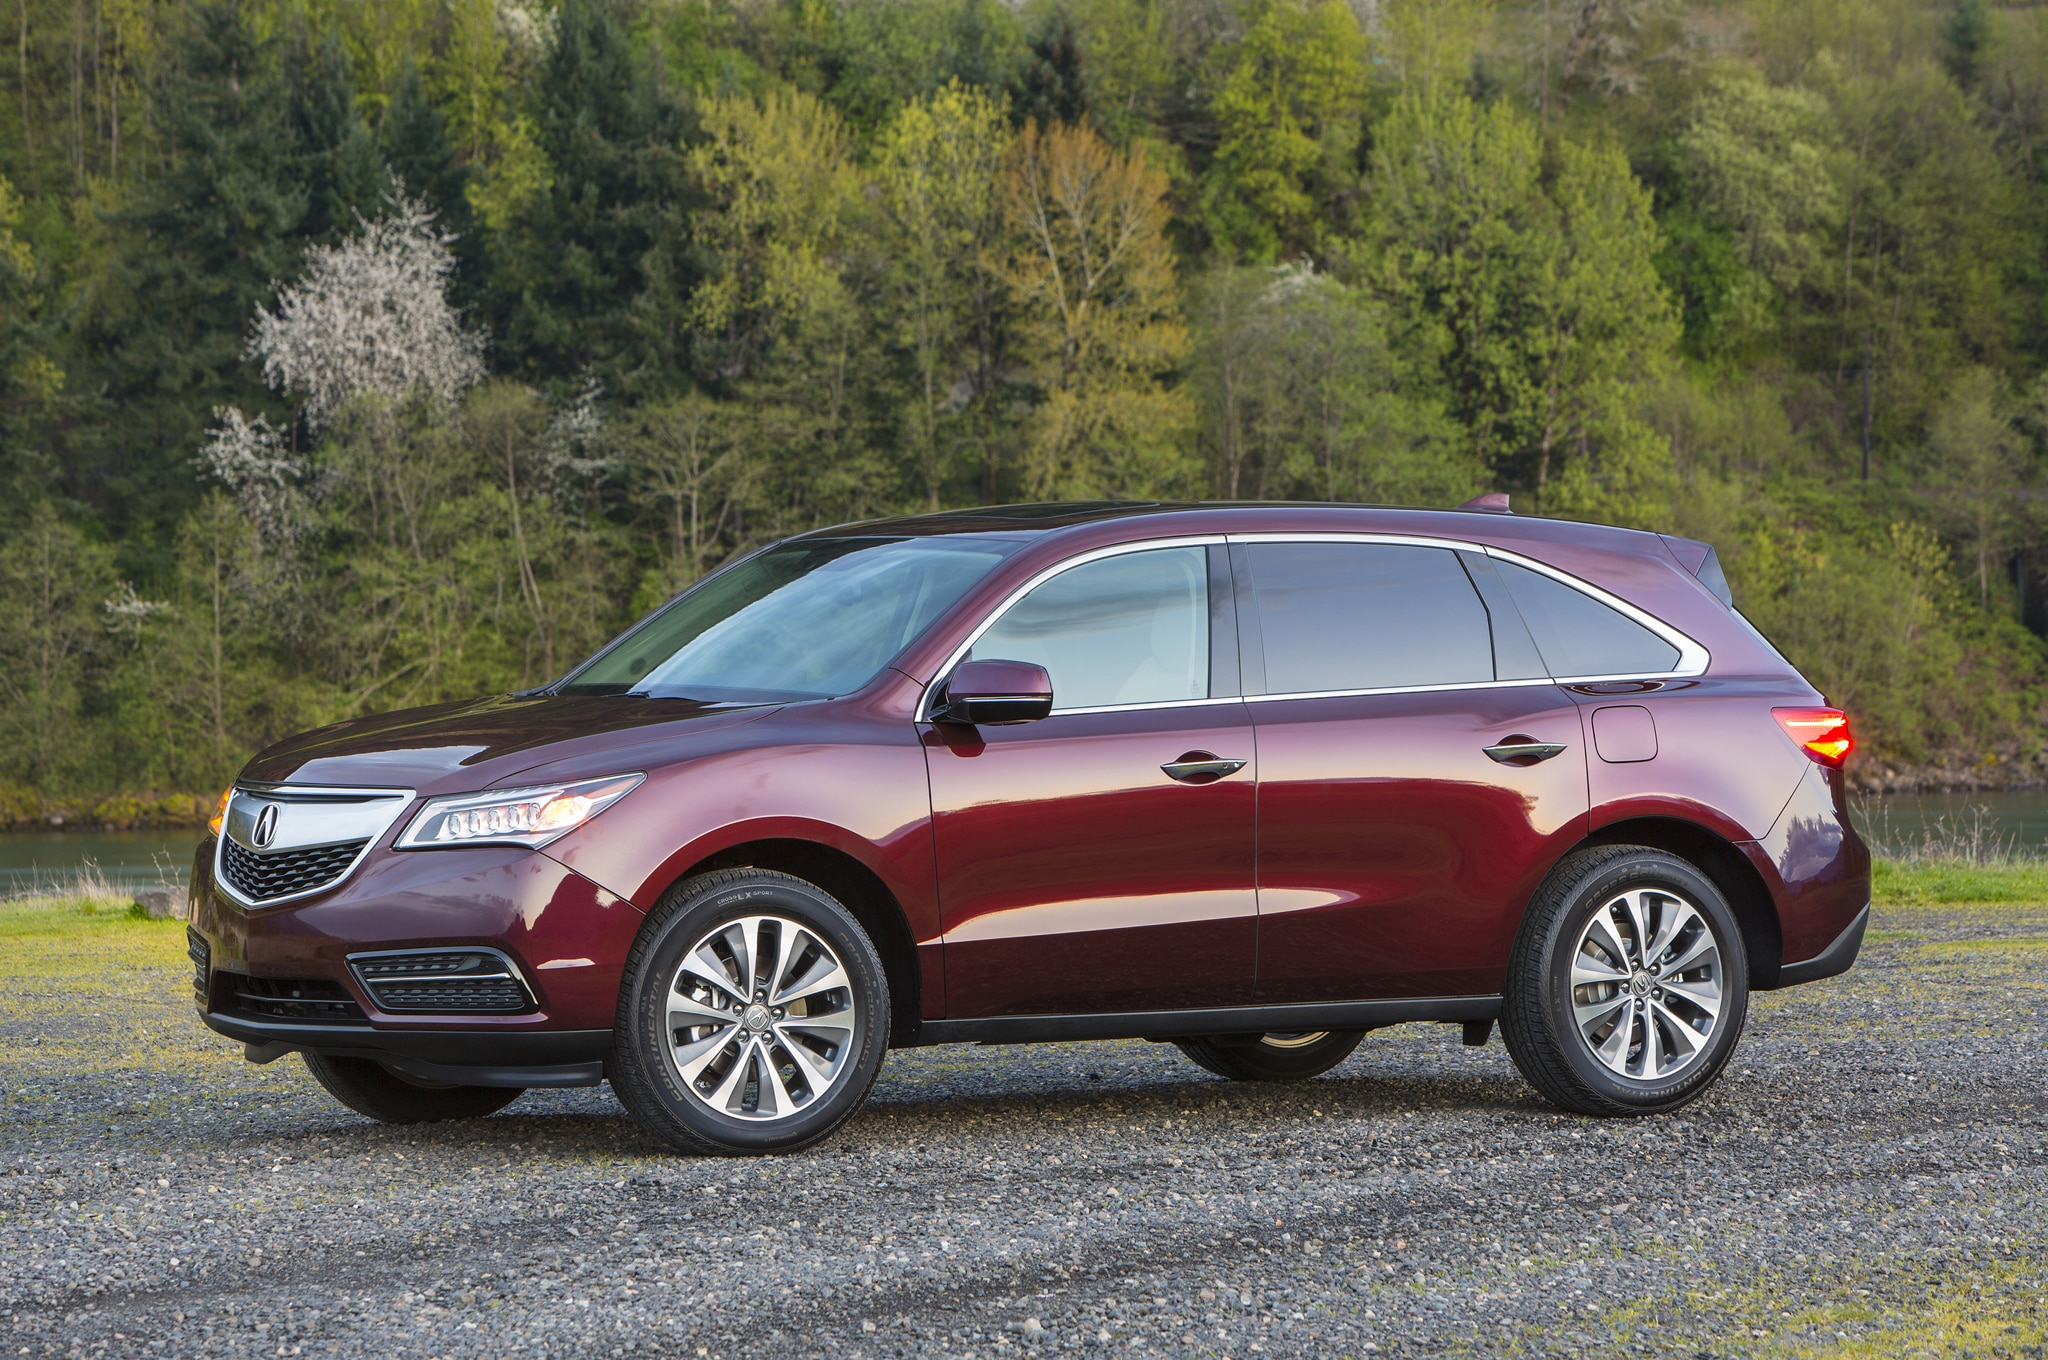 Acura Mdx Claimed As Best Selling 3 Row Luxury Suv Ever Photo Image Gallery